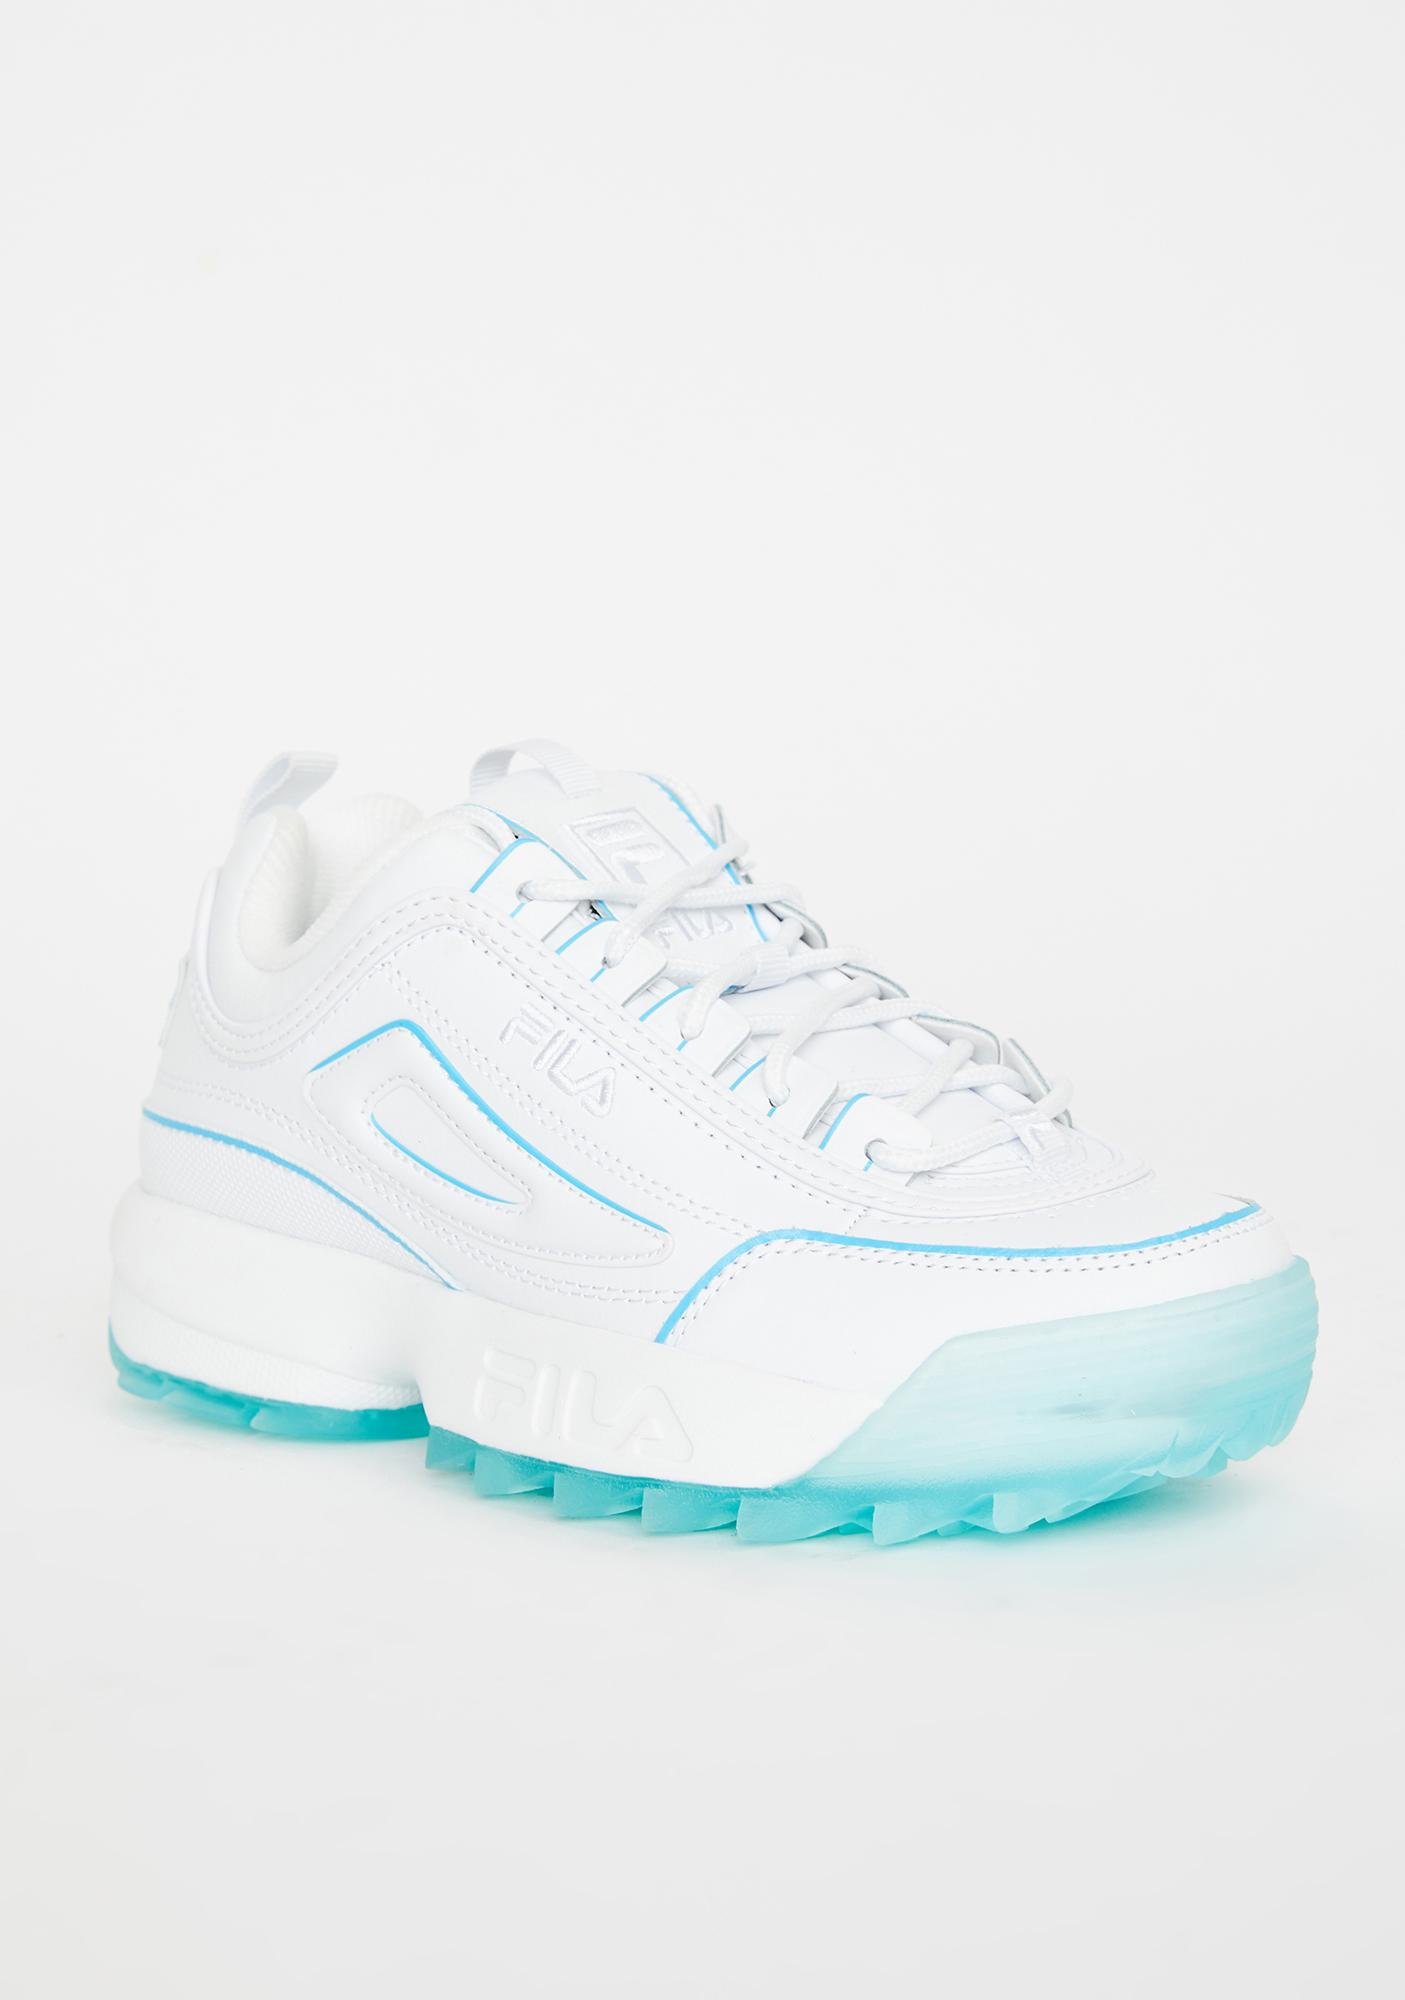 Fila Disruptor 2 Ice Sneakers